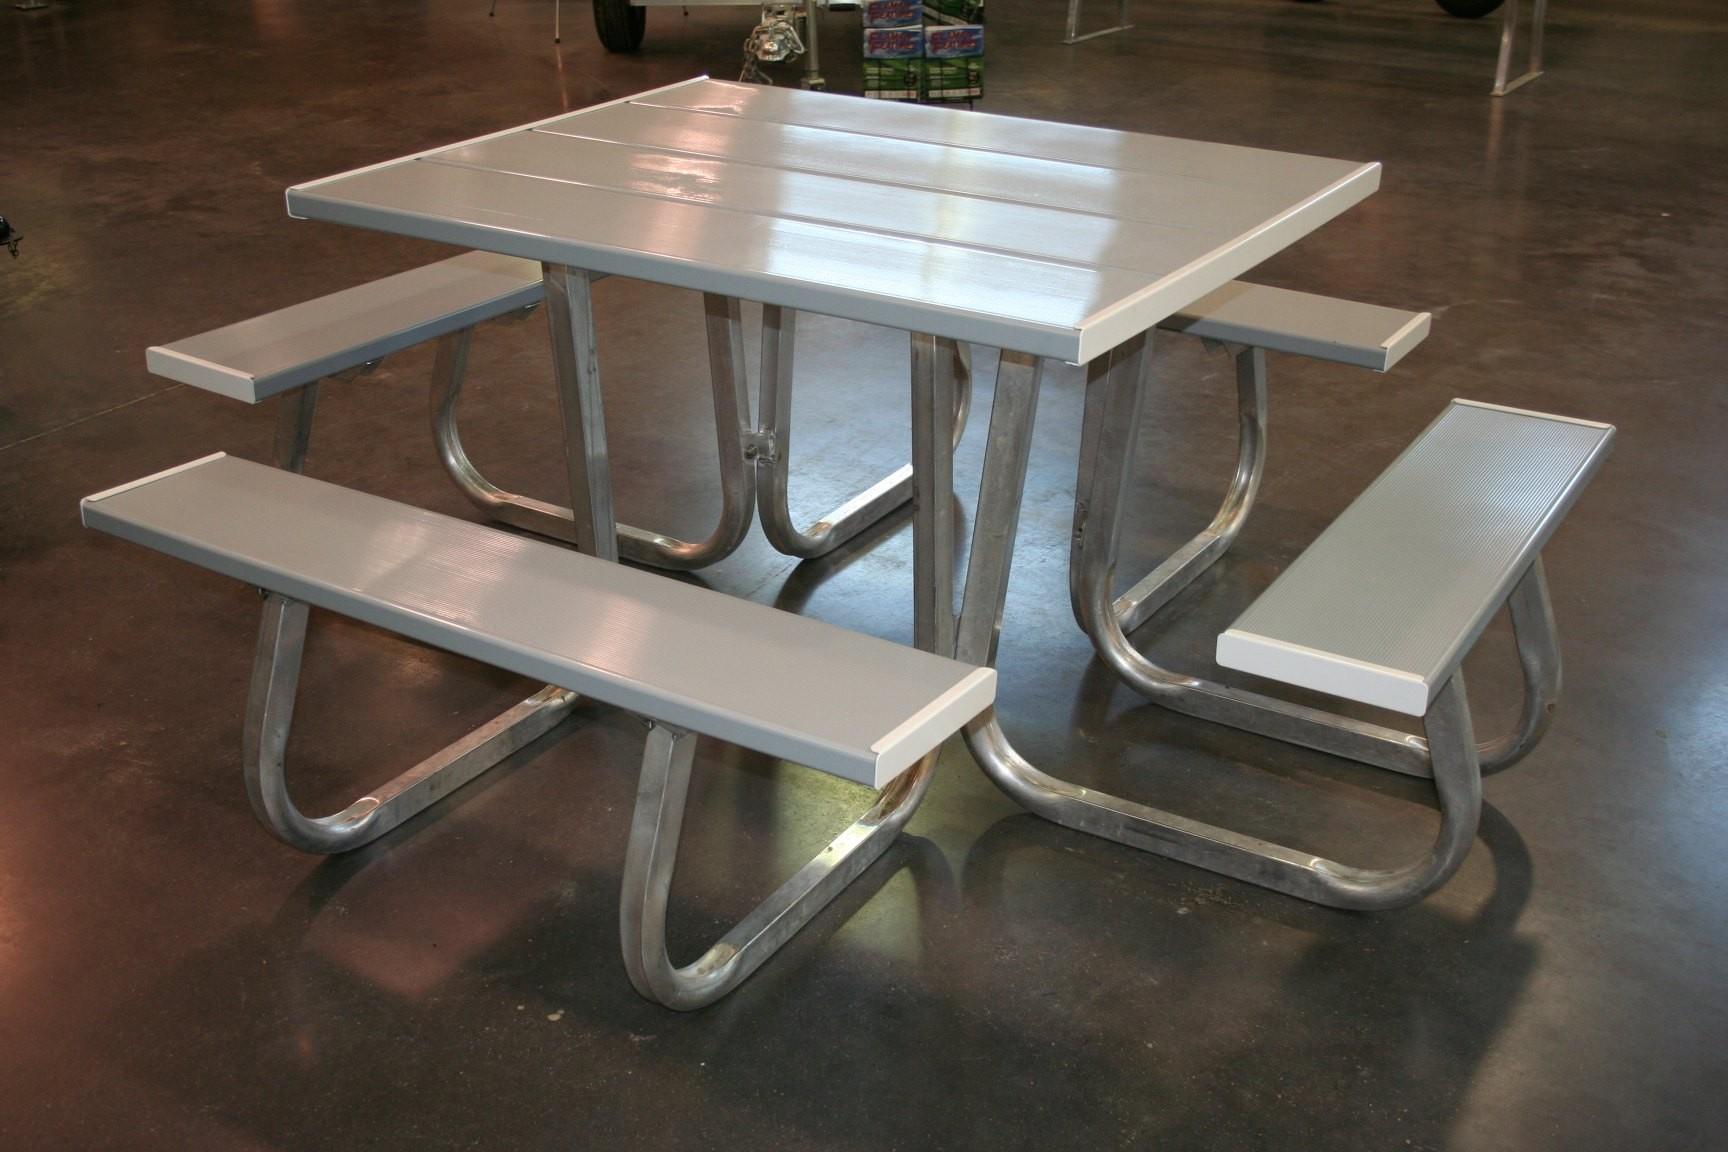 Flaman parts 4 sided picnic table picnic tables summer recreation 4 sided picnic table watchthetrailerfo